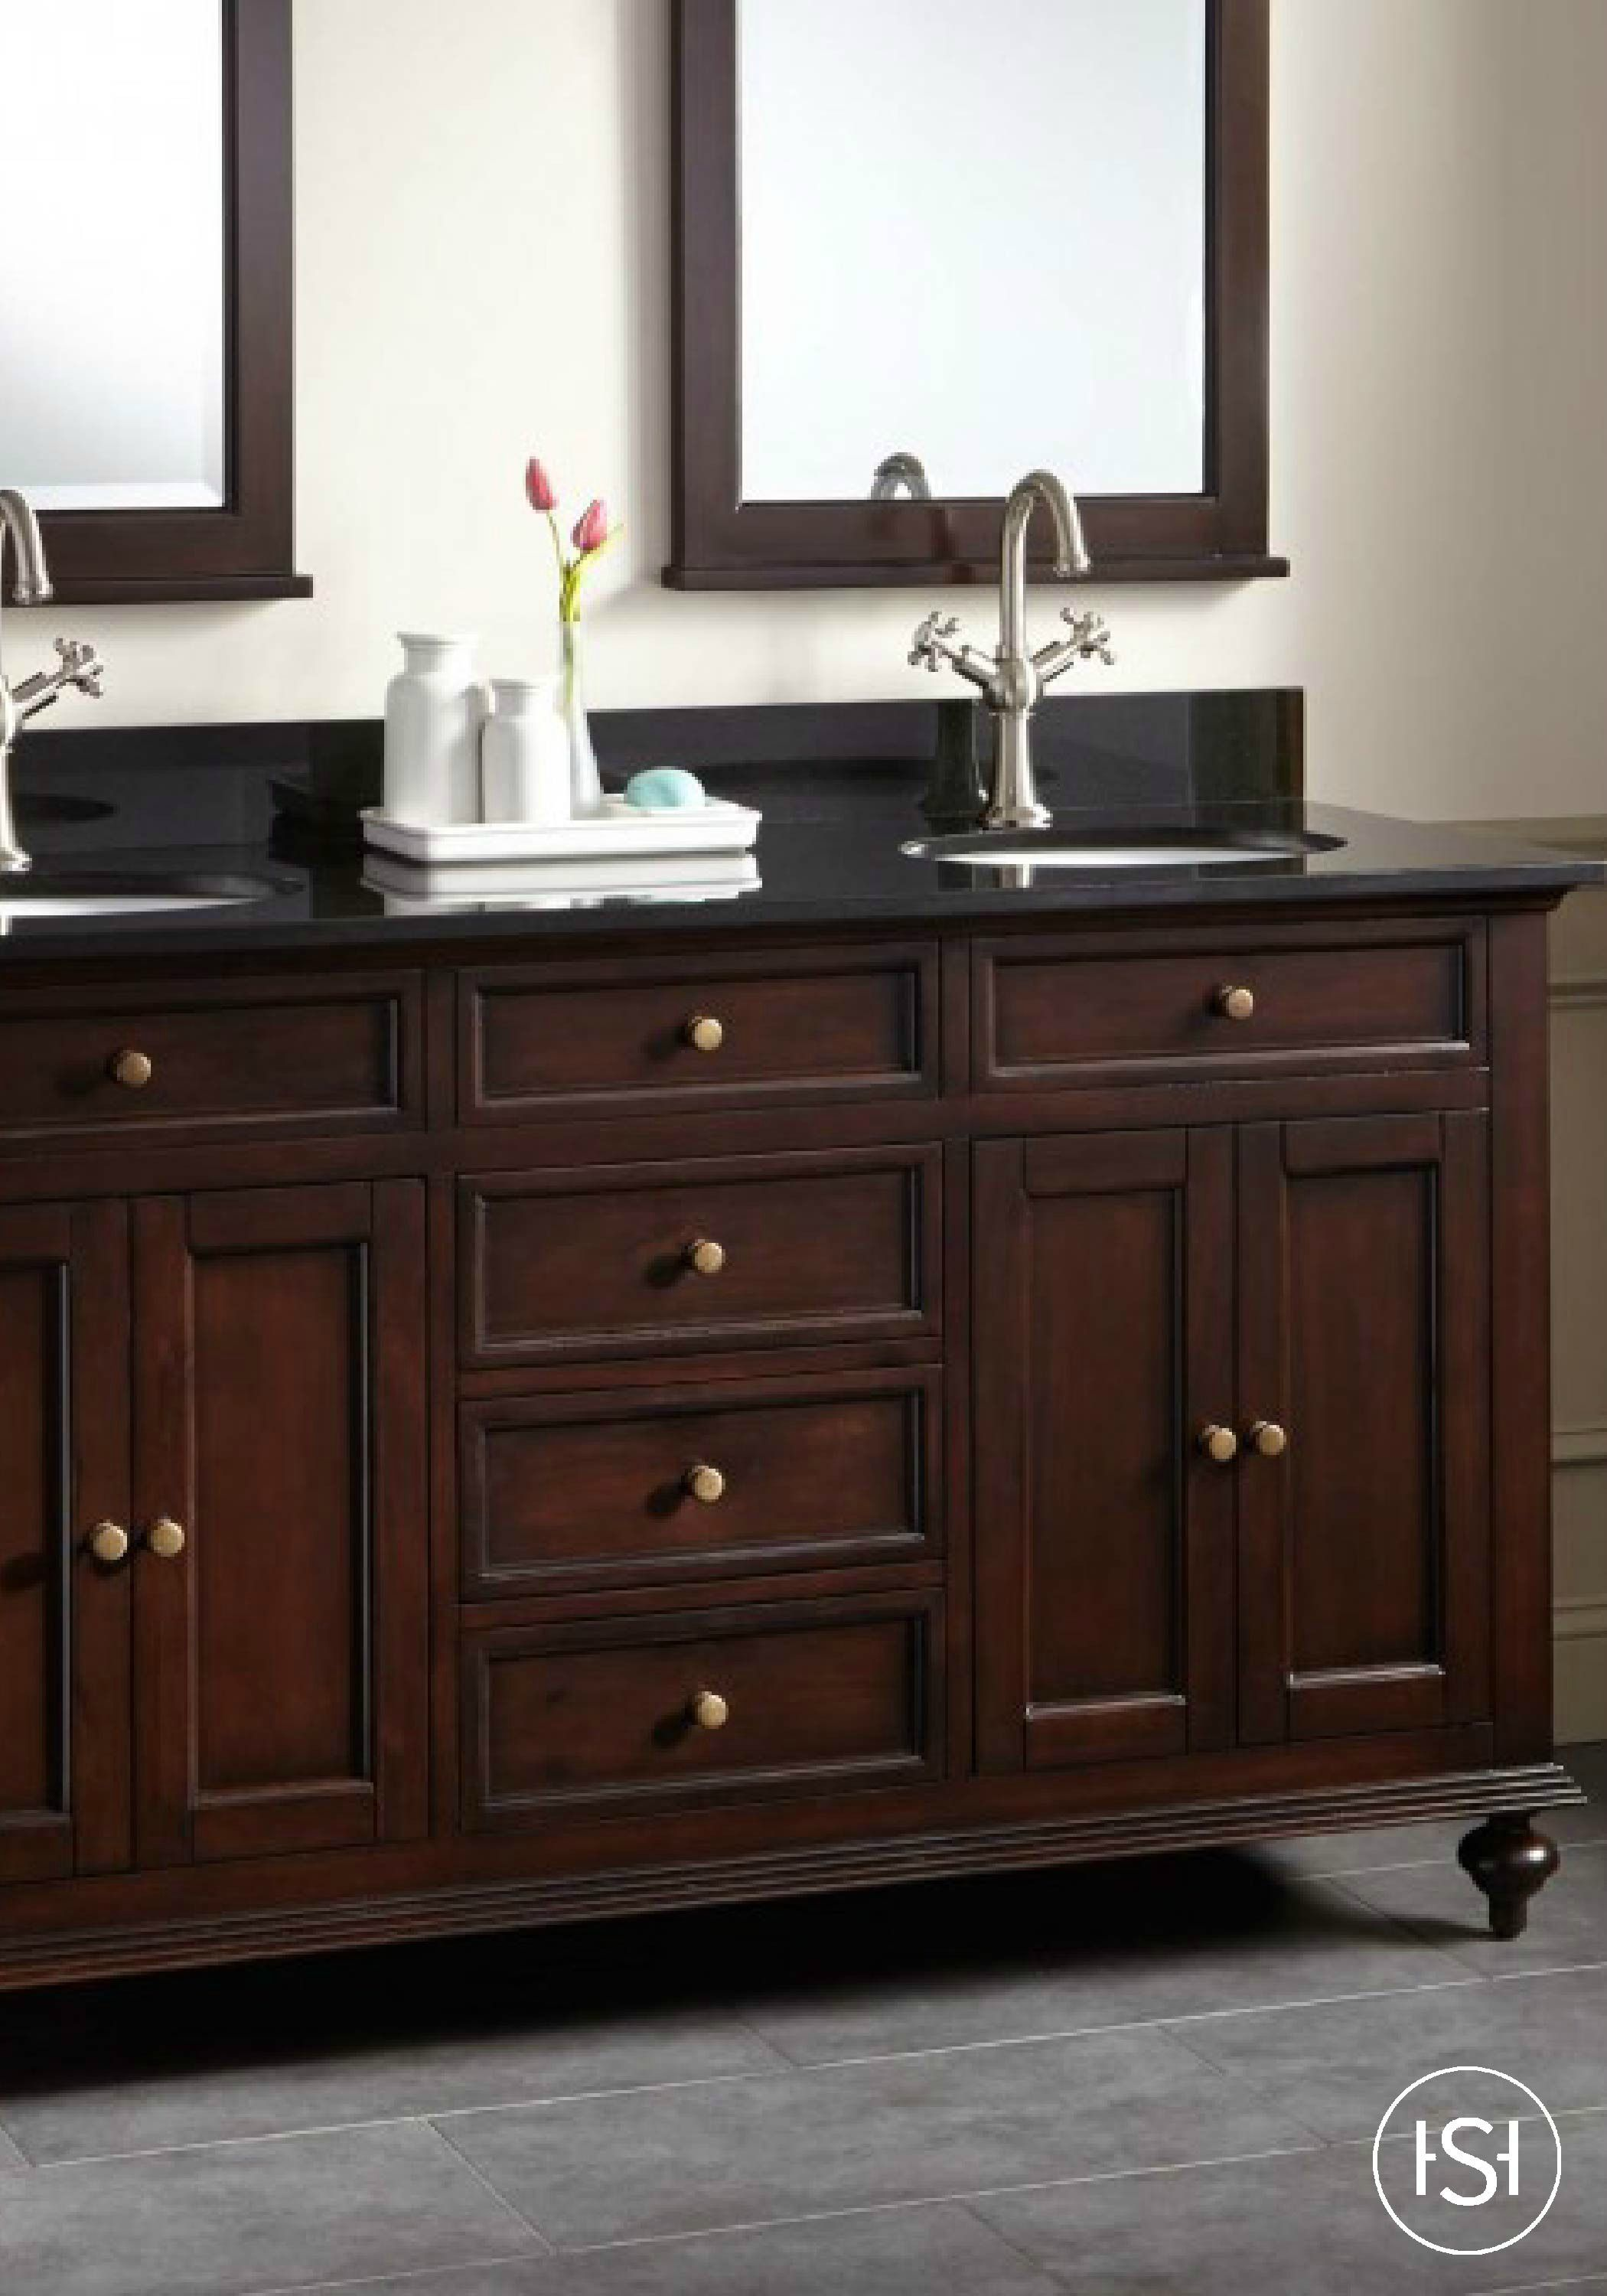 luxury picture double high sink marvelous of vanities inch on end within vanity bathroom